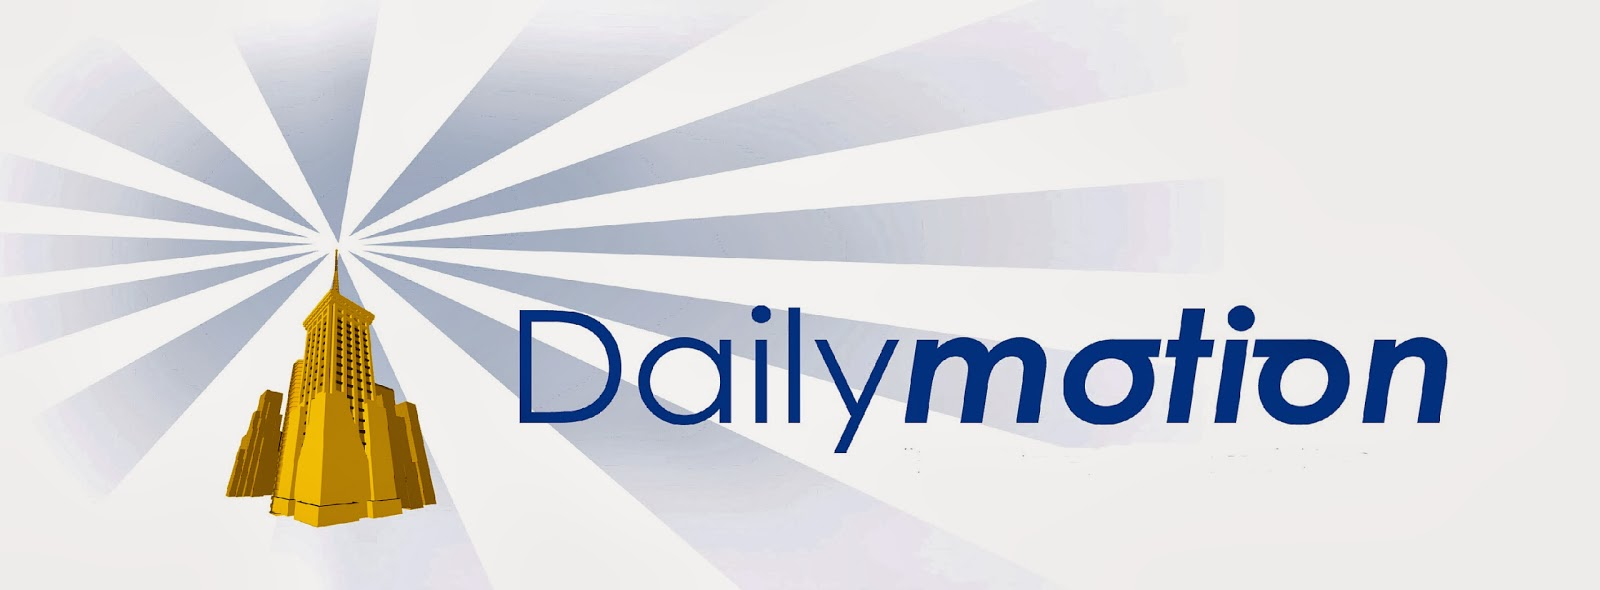 Double for news sharing site DailyMotion which opens its first subsidiary in Japan and is about other to achieve external growth in Europe.